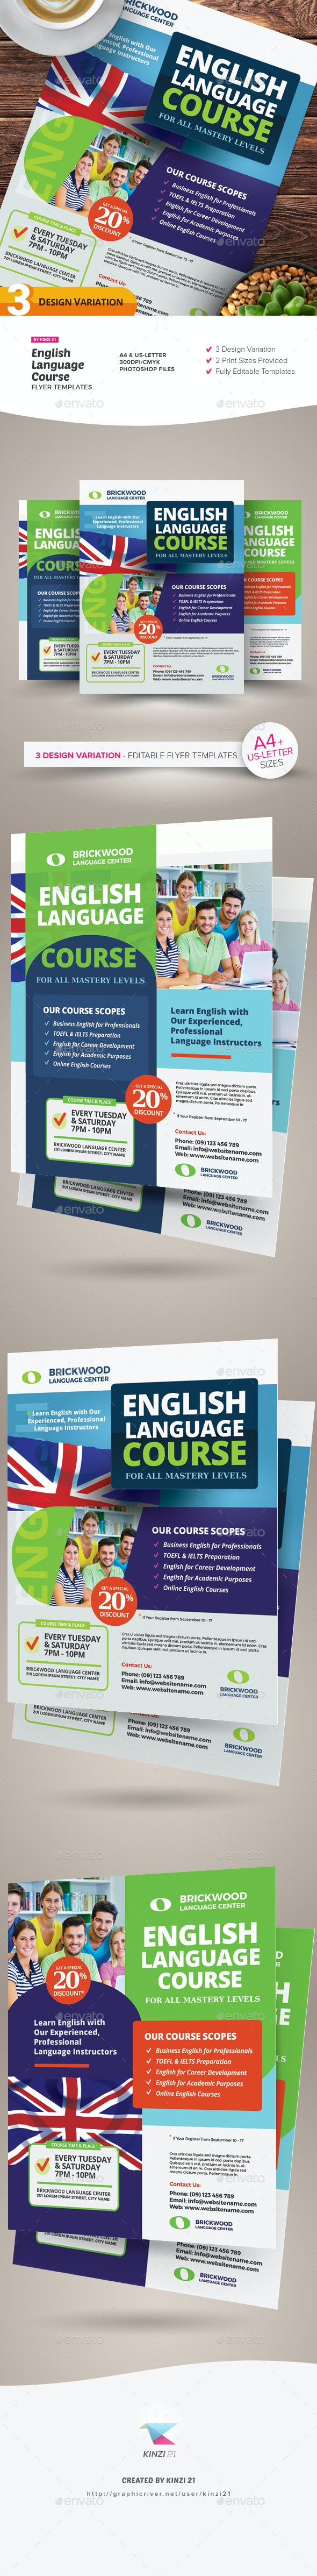 English Language Course Flyer Templates - Corporate Flyers